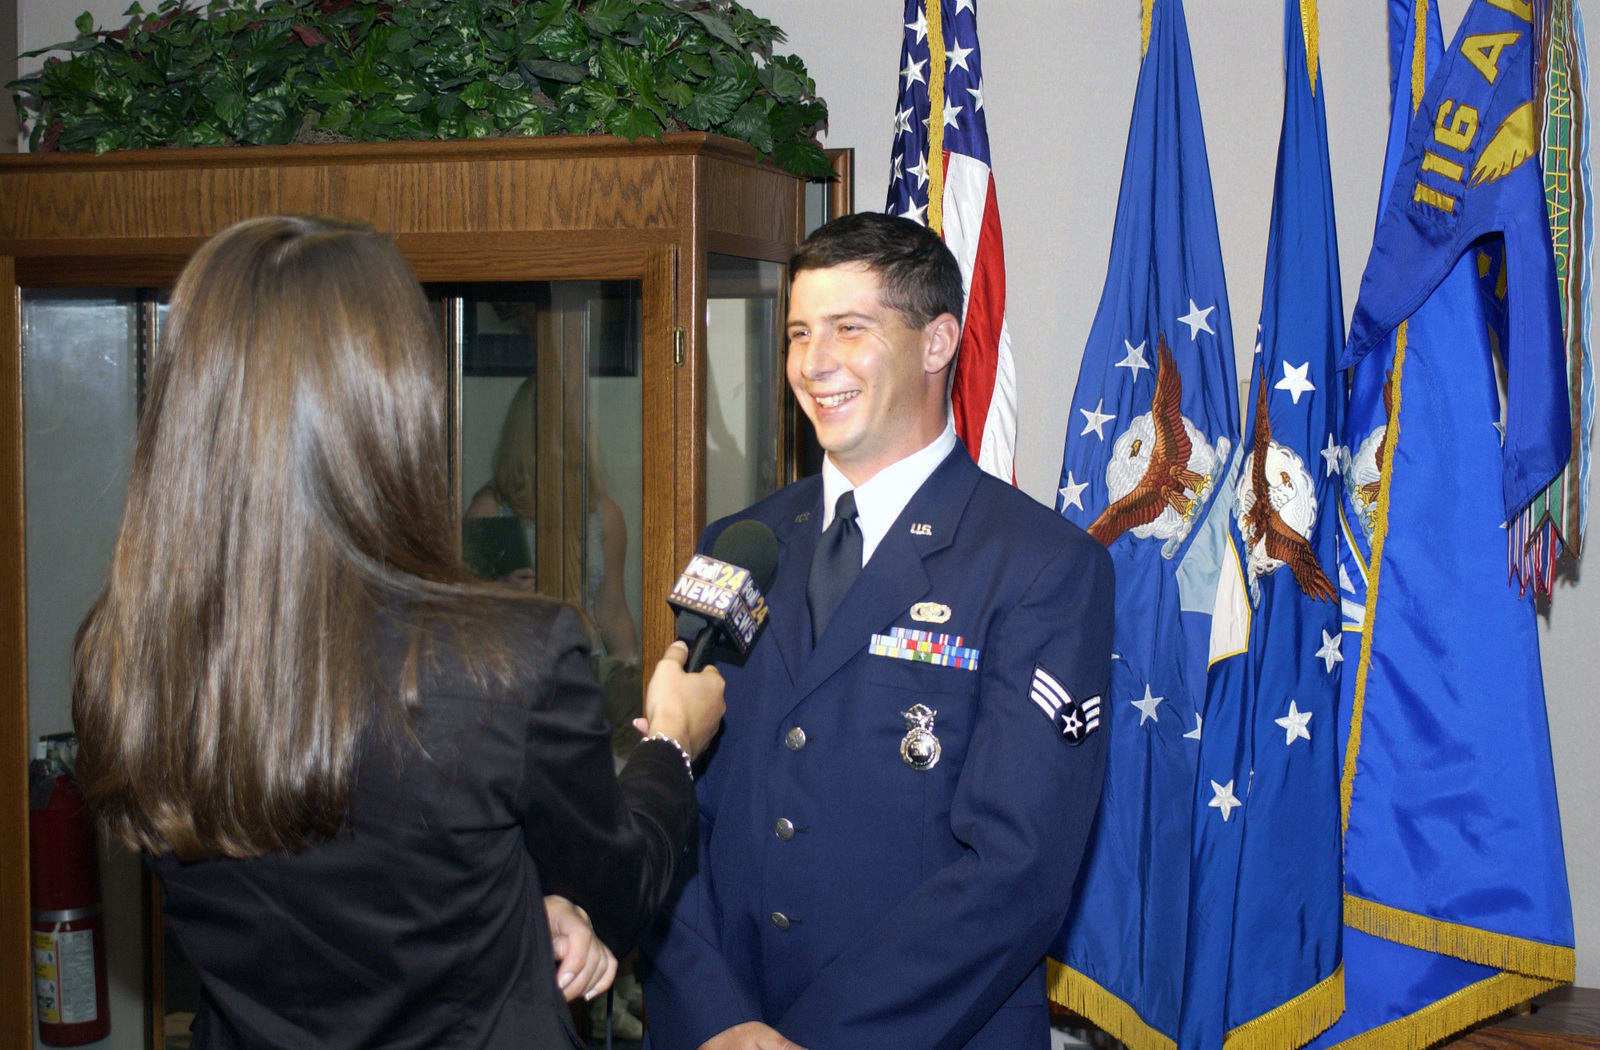 A local television reporter (left) interviews Georgia Air National Guard SENIOR AIRMAN Joe Ciancio (right), 116th Air Control Wing, on Sept. 29, 2004, at a ceremony held at Warner Robins Air Force Base, Ga., to recognize SENIOR AIRMAN Ciancio for his role in assisting at the scene of a serious traffic accident. (U.S. Air Force photo by MASTER SGT. Rick Cowan) (Released)